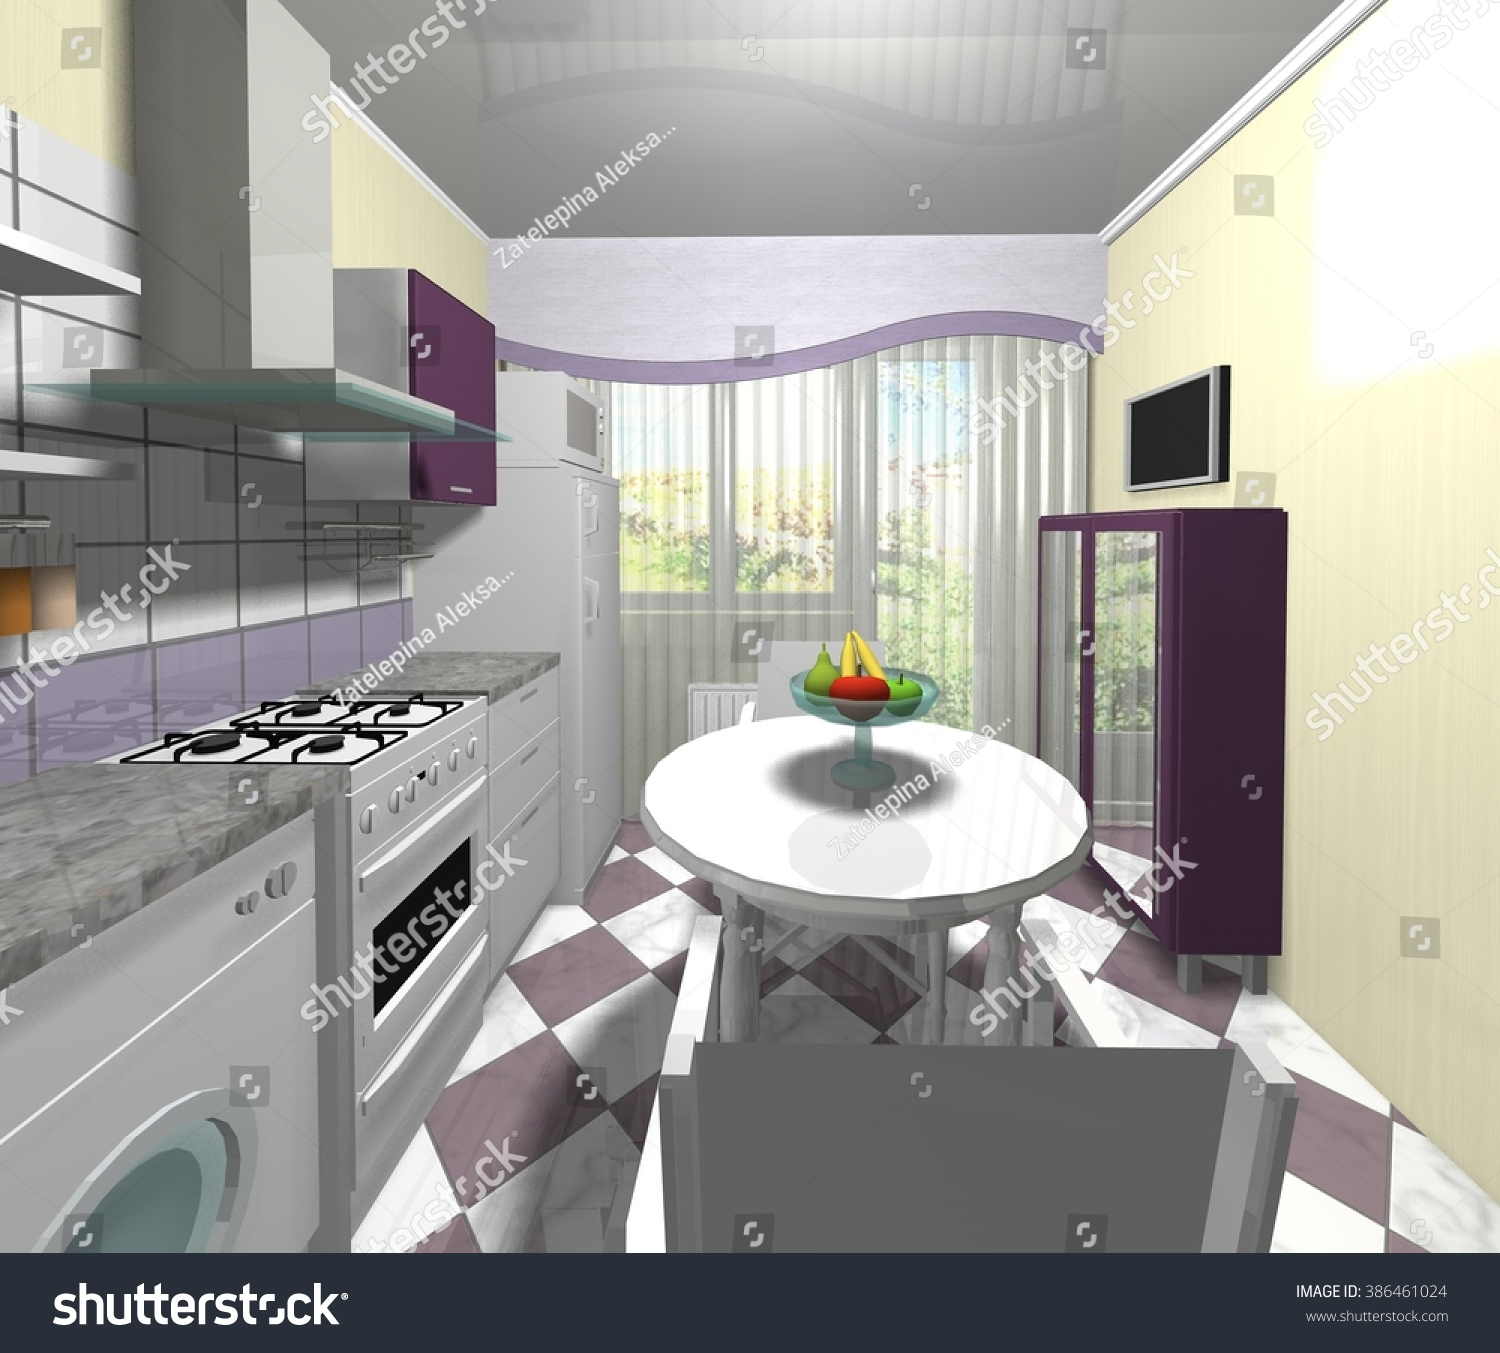 Traditional White Kitchen Design 3d Rendering: Interior Design Modern Kitchen 3d Rendering Stock